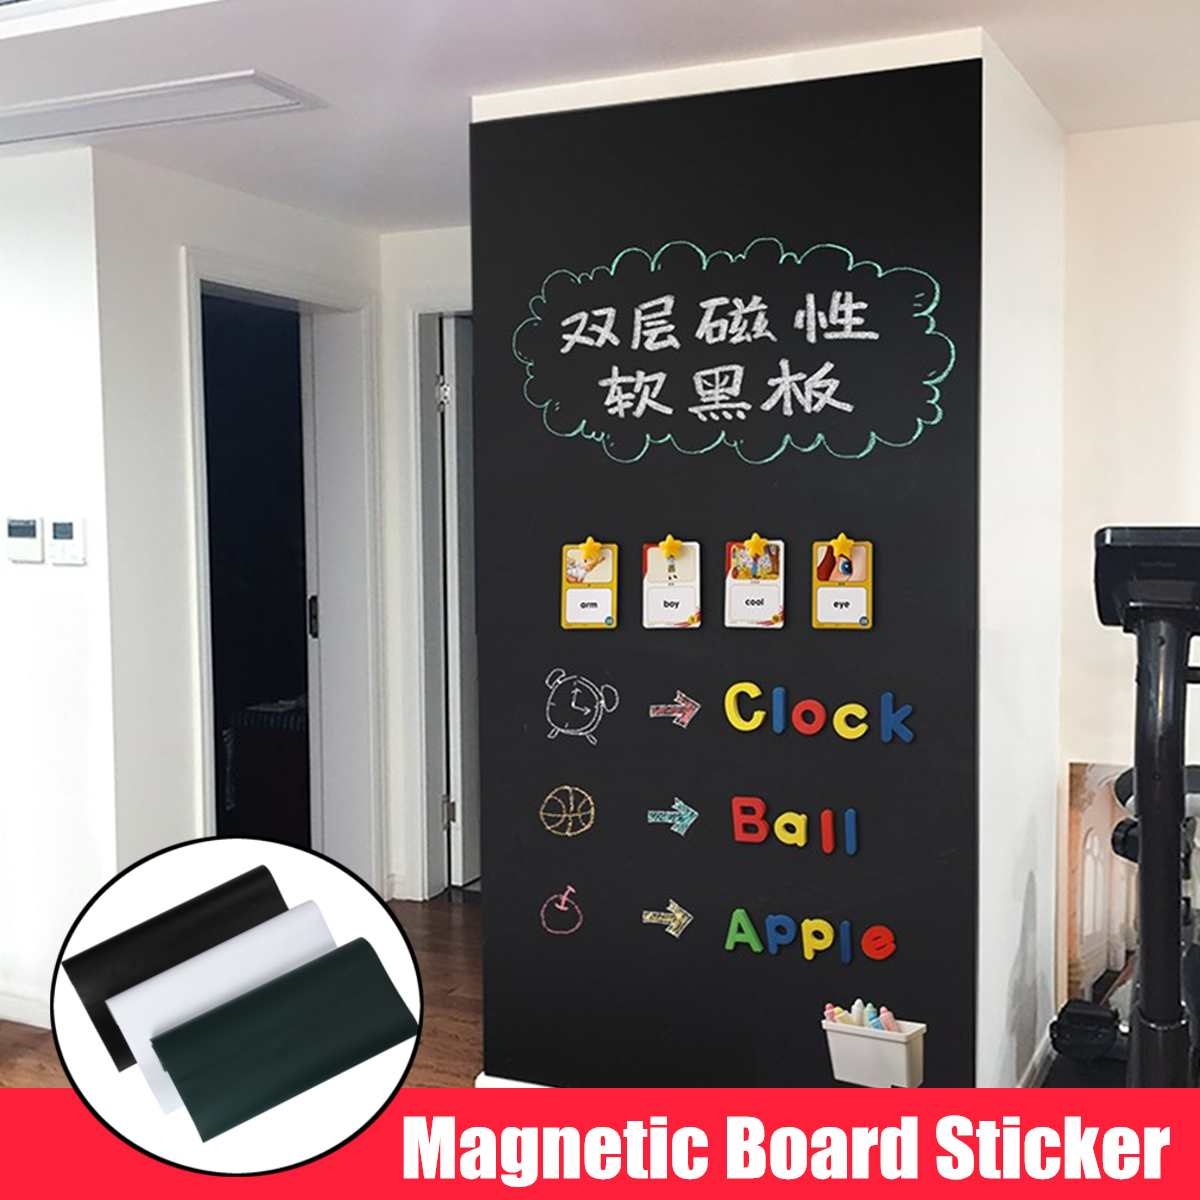 Magnetic Wallpaper Self-adhesive Blackboard Stickers Children Graffiti Wall Stickers Office Presentation Boards Whiteboard